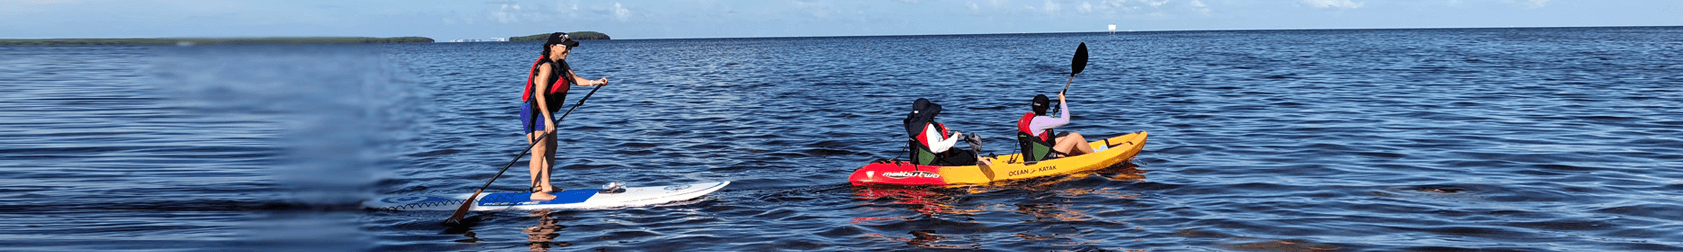 Kayaking Rentals Deering Point Miami